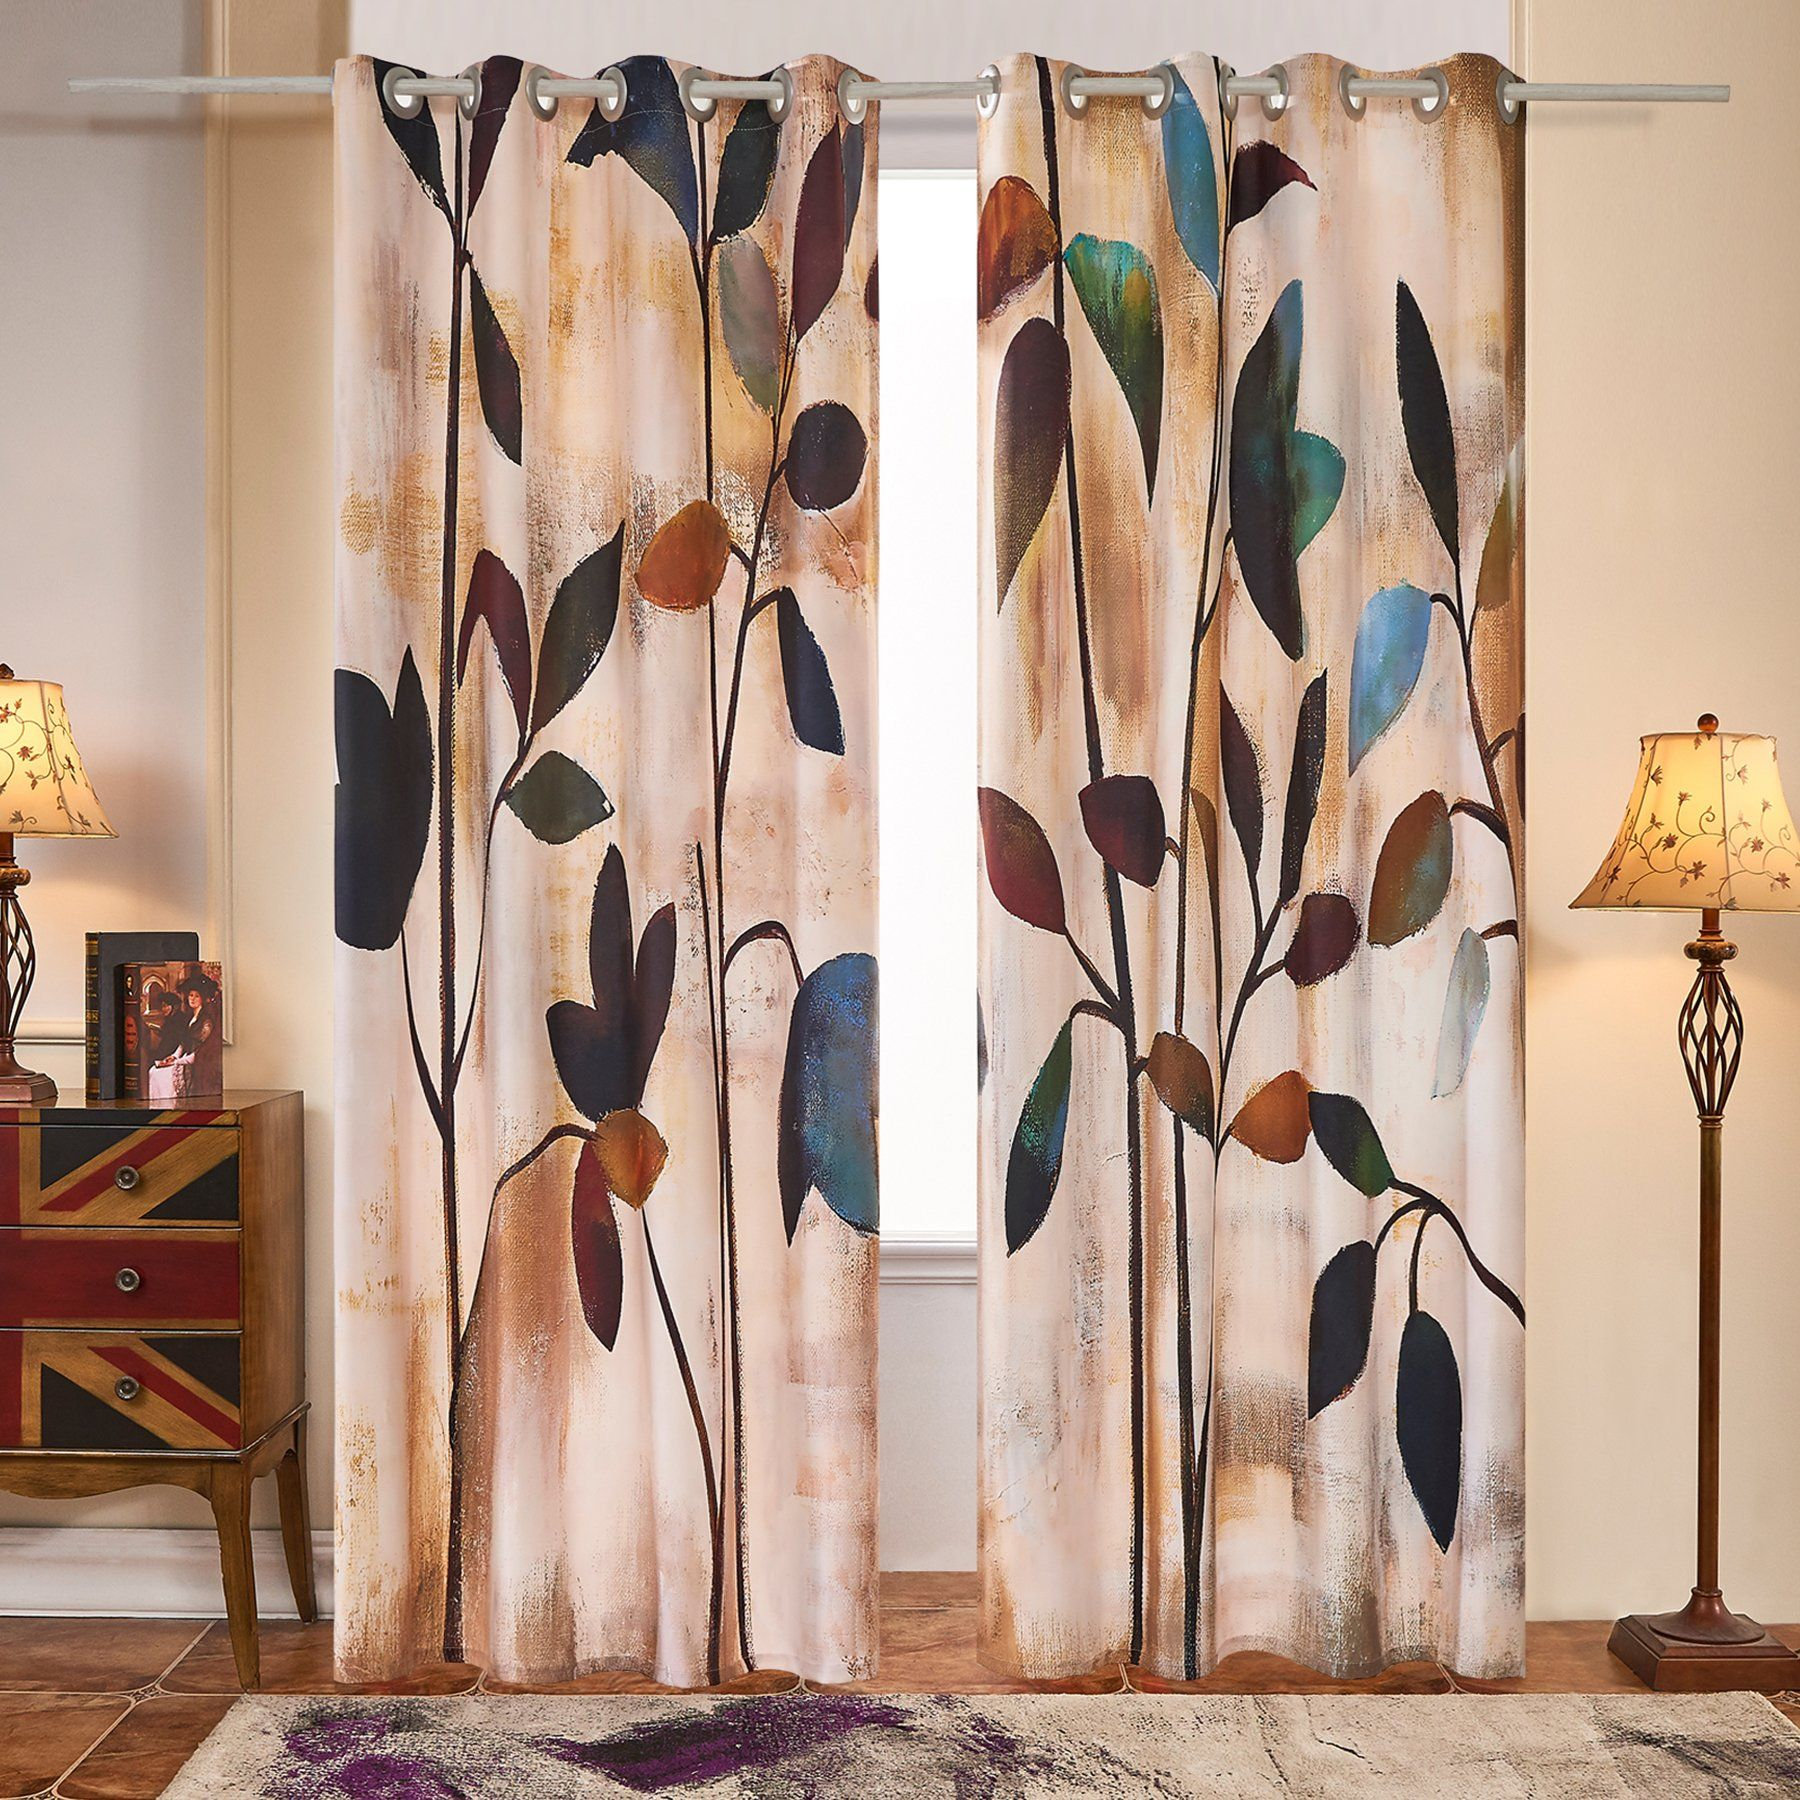 2 Panel Set Digital Printed Curtain For Window is part of Home Accessories Design Window -  100% polyester The colorful picture print window curtains are made of 100% highquality polyester  The polyester fabric curtains enjoy a good property of wrinklefree and keeping forms  Each package of the scenery animal themed room curtains includes two curtain panels  The size of one panel is W54 × L63  70% blackout printed window curtains are great for living rooms, bedrooms, children's rooms and the window draperies ensure you a sound sleep and protect your privacy better  The washable printed window curtains which are washed in cold delicate cycle can be hung dry only and dried naturally in ventilated places  The bedroom living room window drapes are soft, drapery and fantastic to touch and also the 2 window panels give your home a luxury look